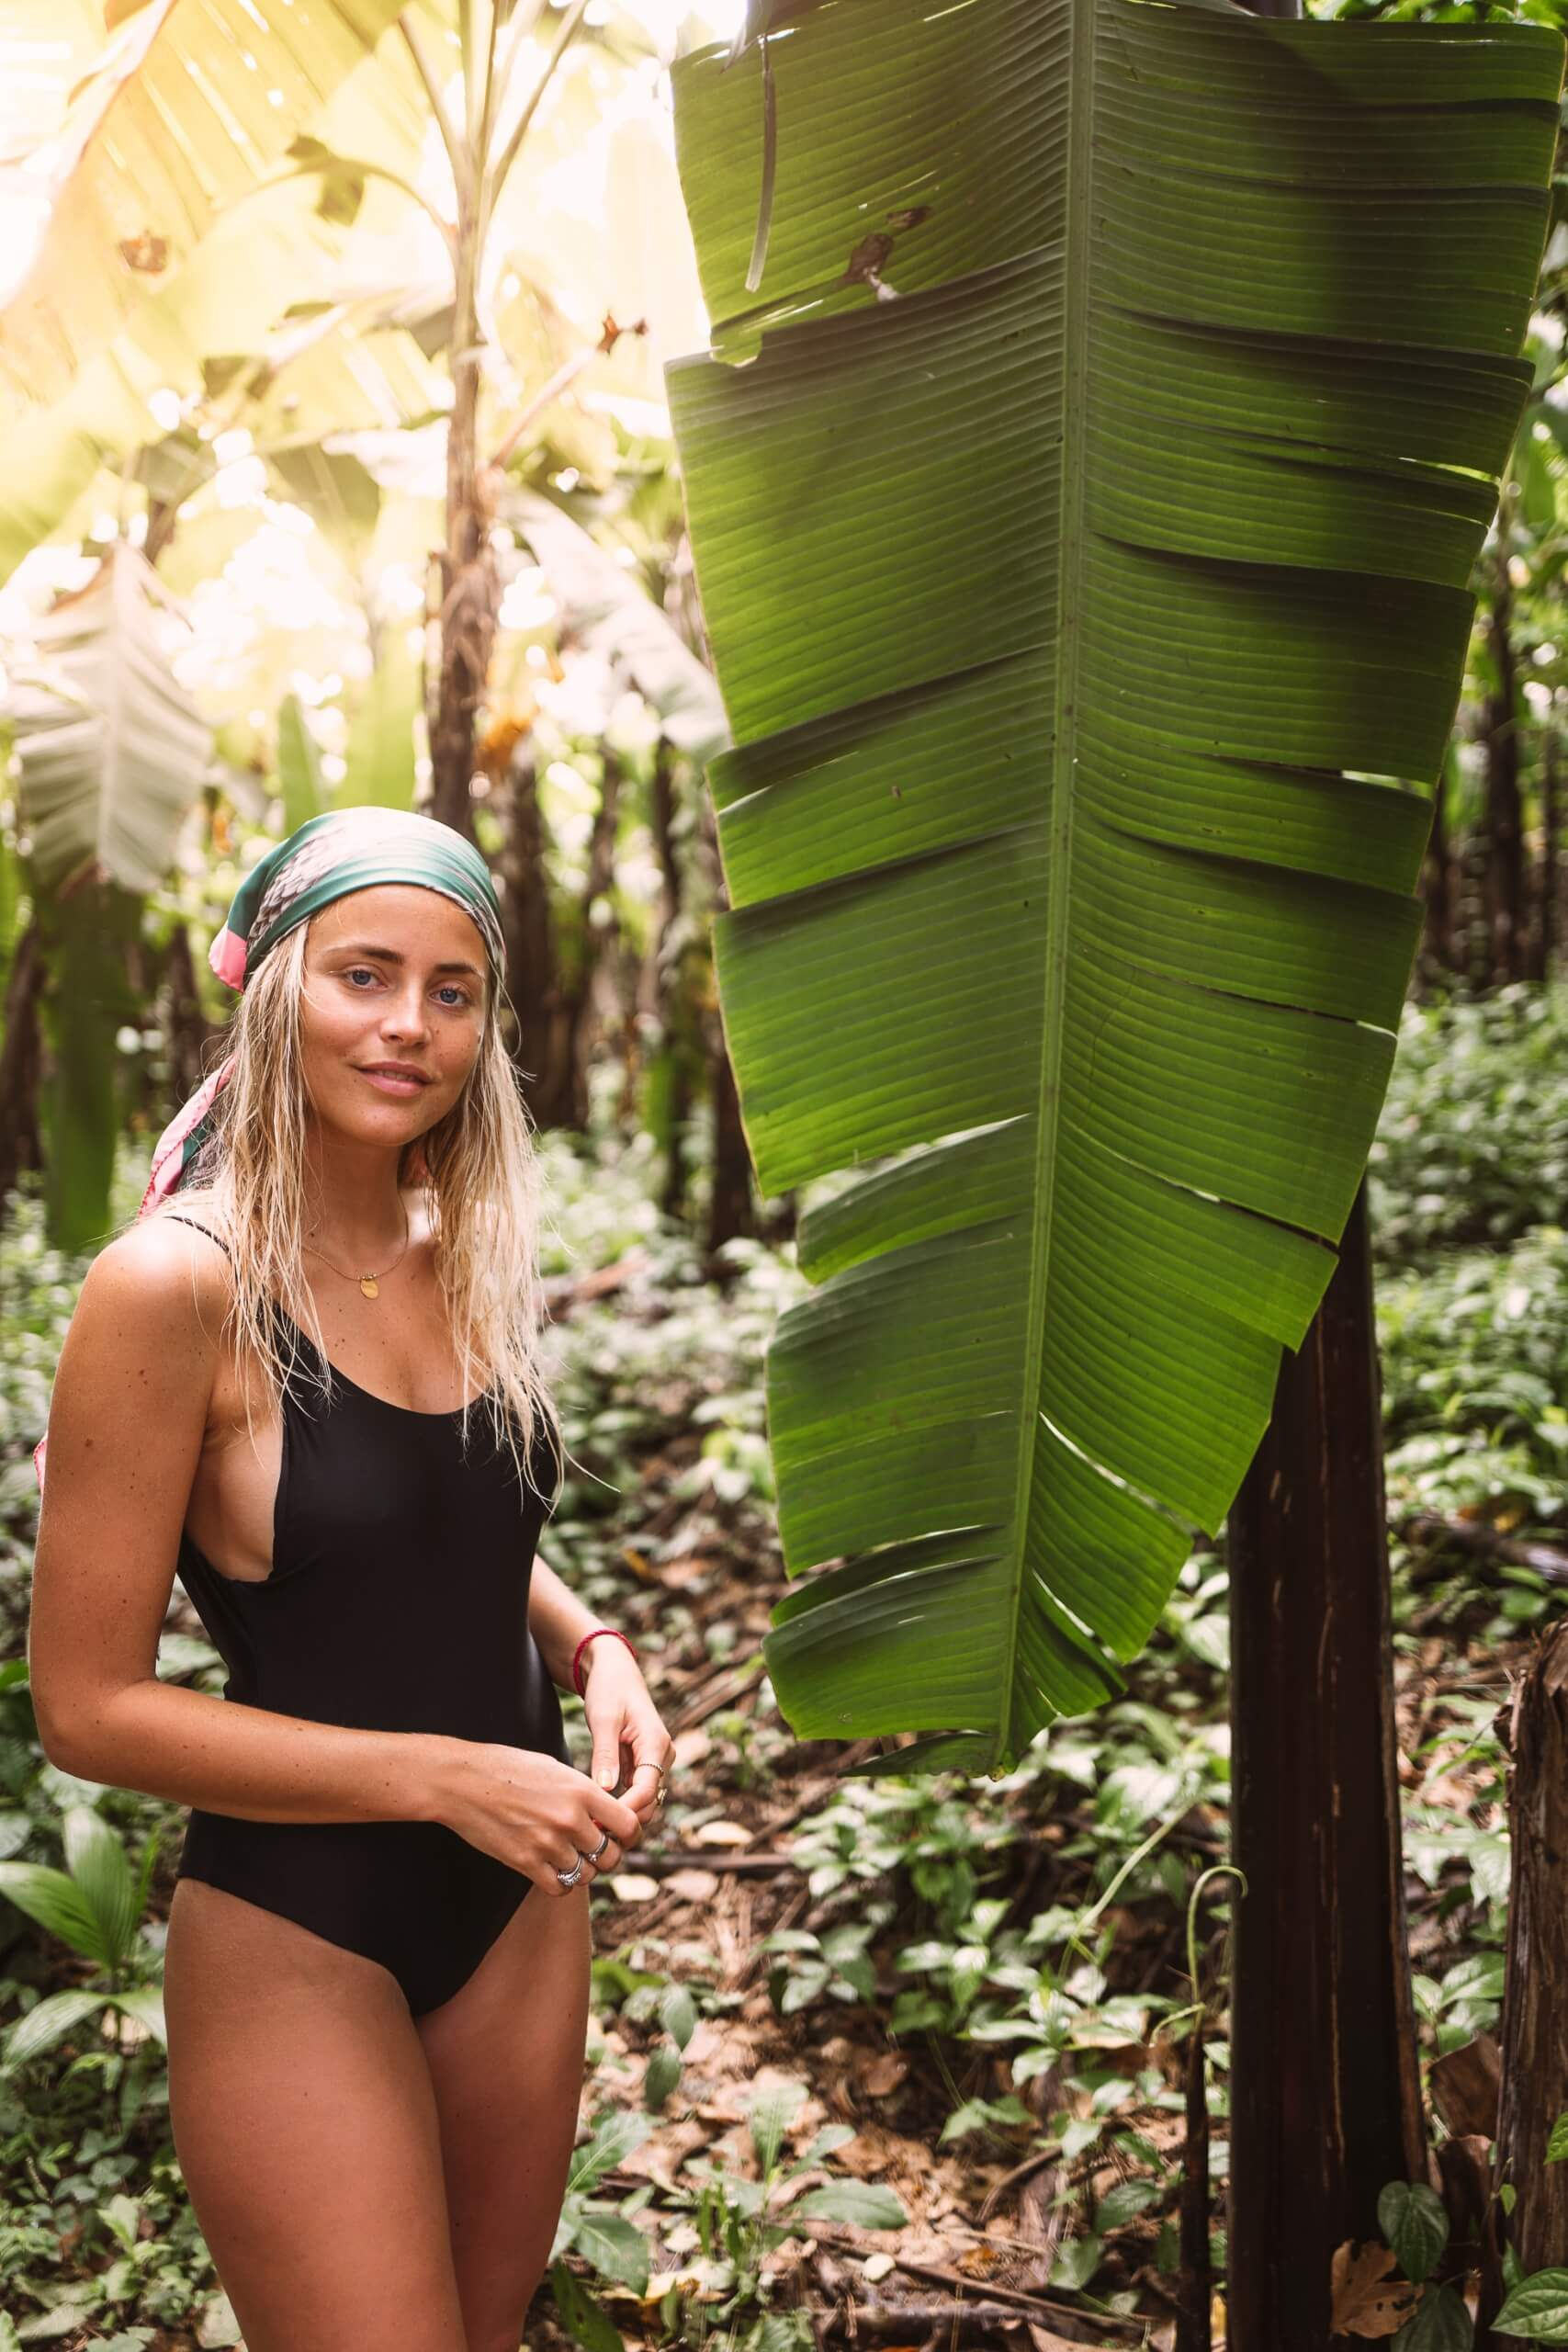 janni-deler-jungle-vibes-lombok-2-of-7